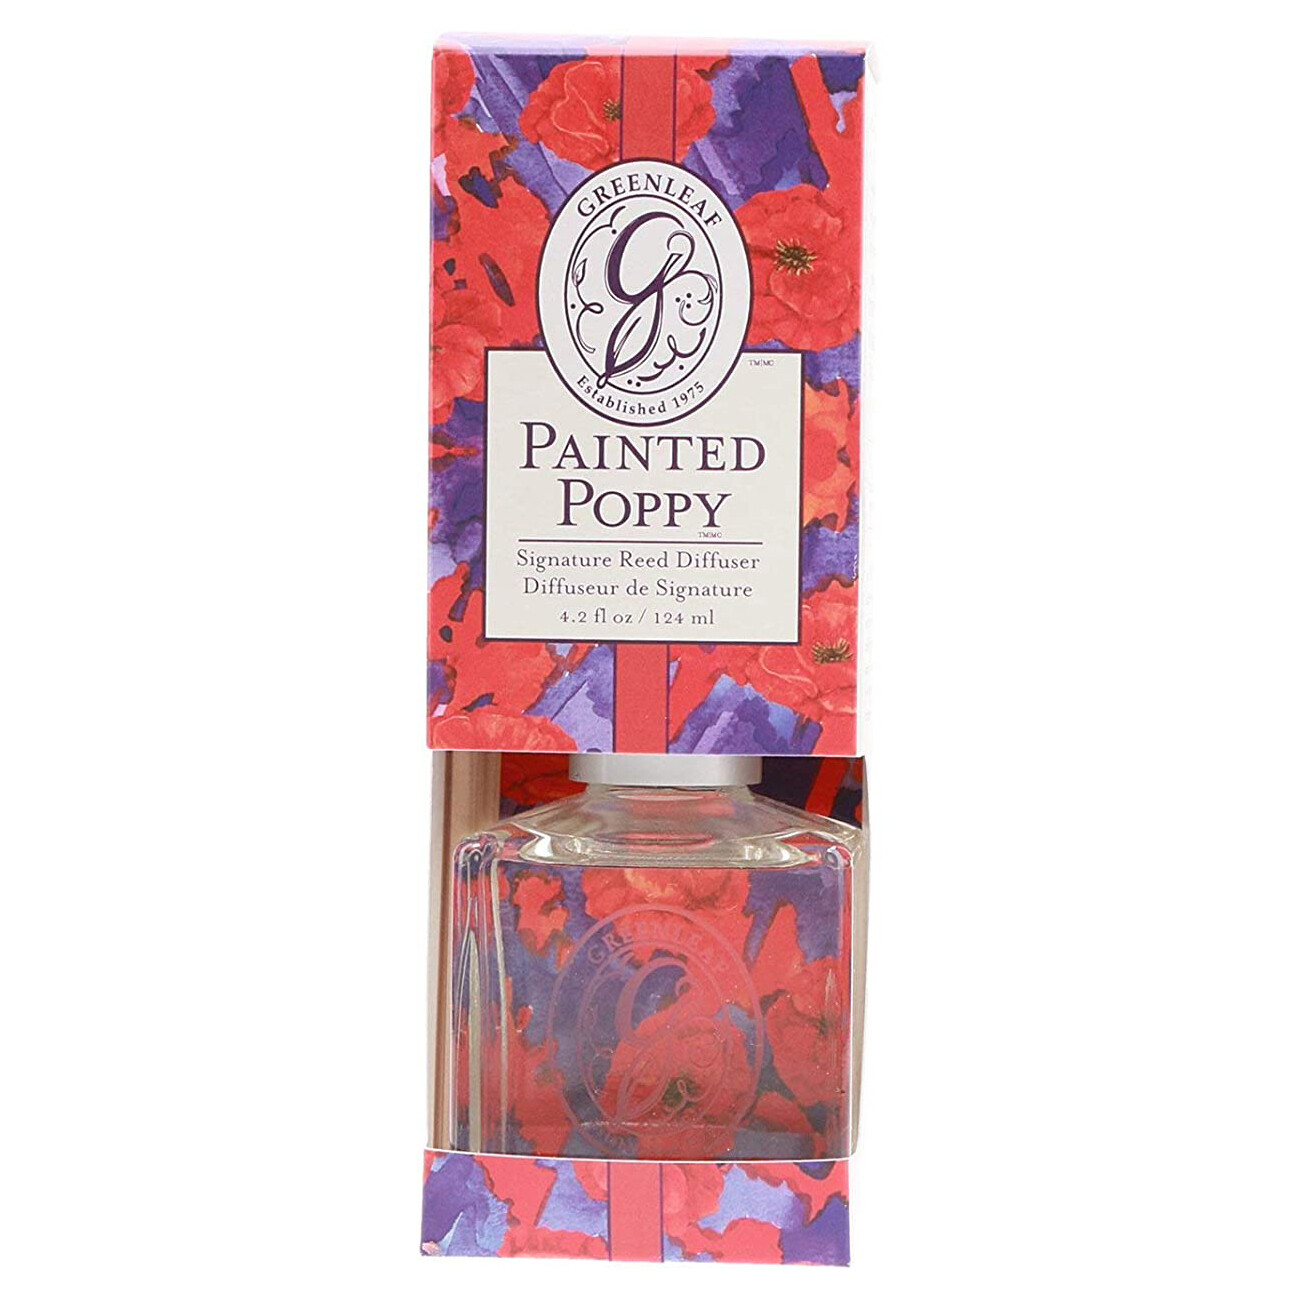 Painted Poppy - Reed Diffuser